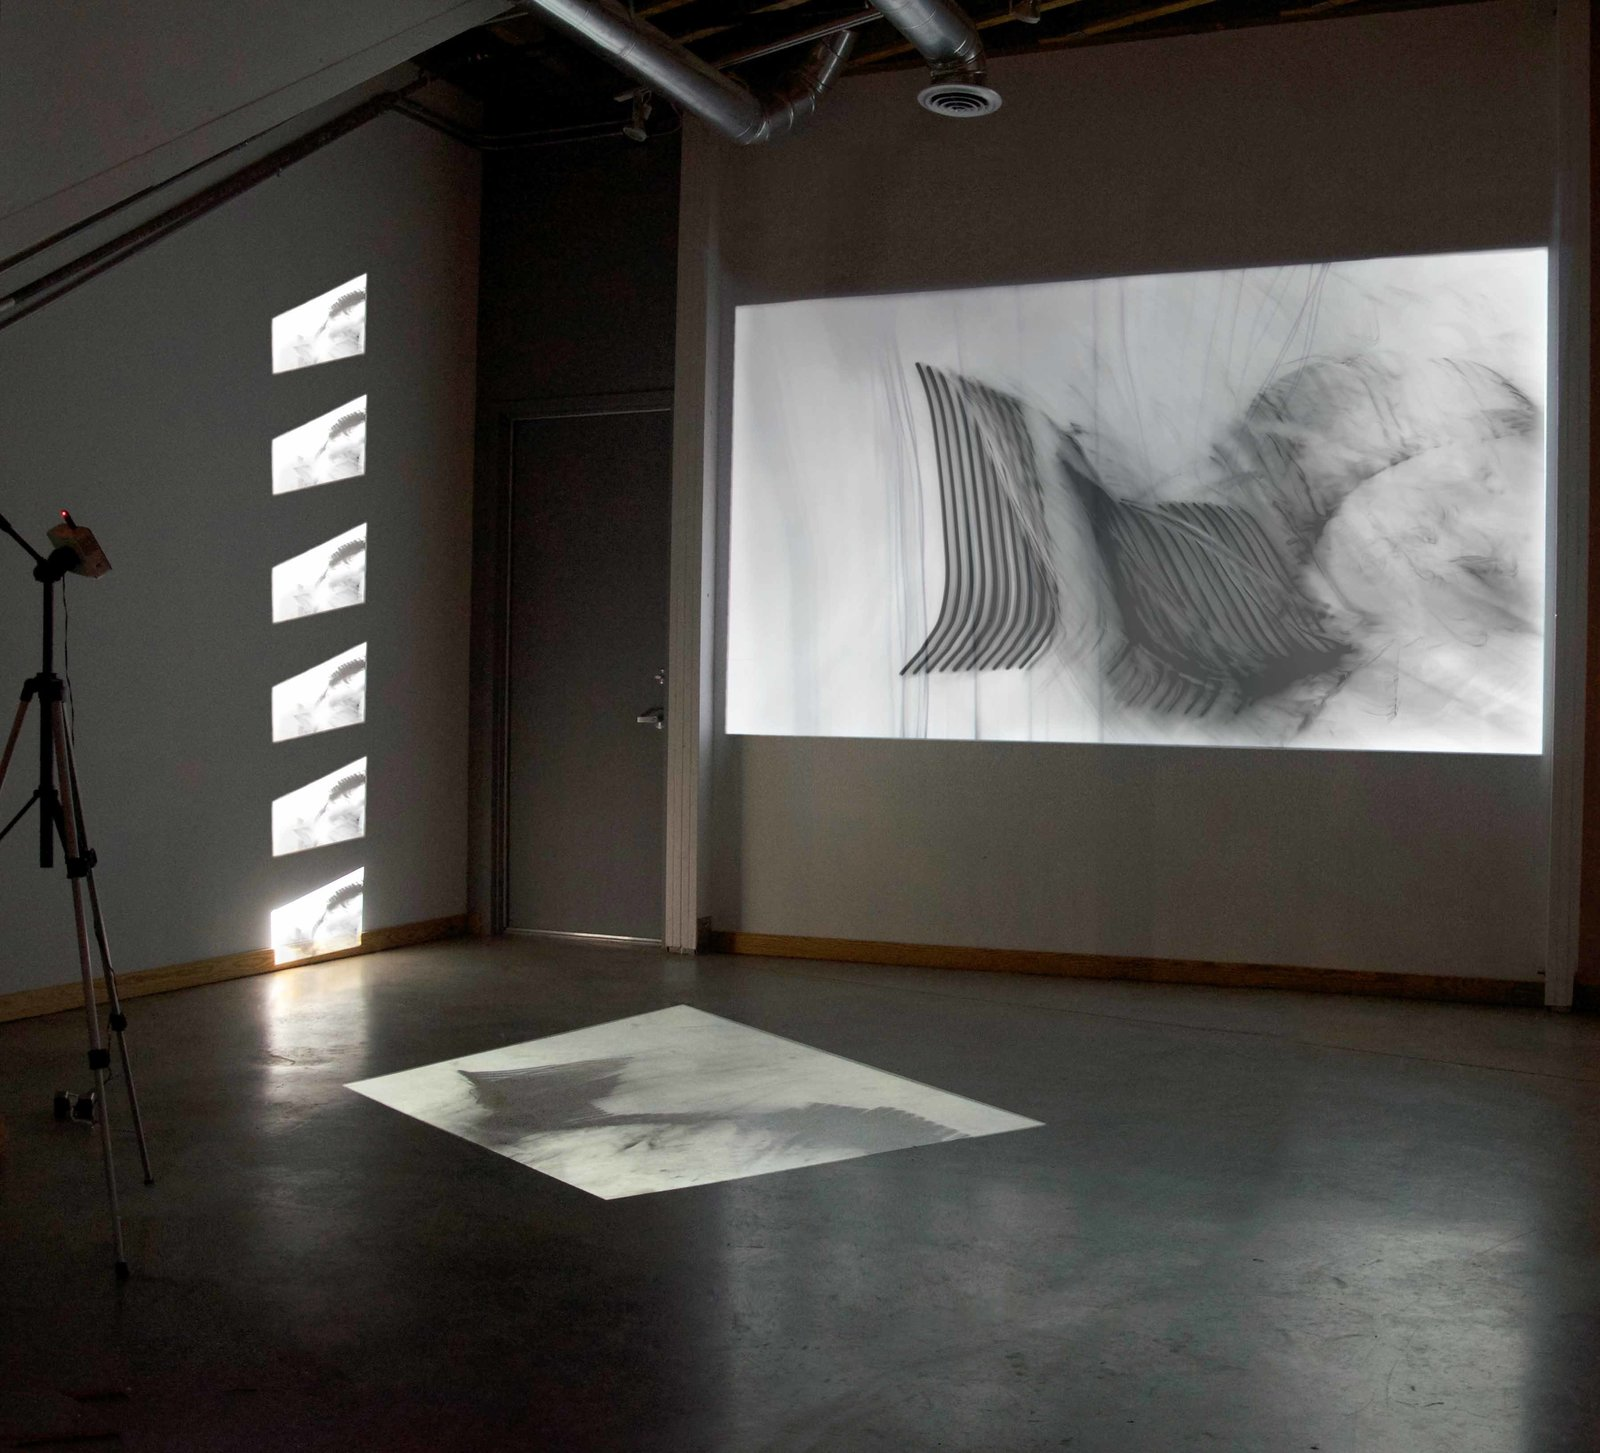 A new Lightroom exhibit by multimedia artist Bojana Ginn is set to open at the end of January 2016. Here, a three-channel video installation reinterprets the act of drawing through a new medium.